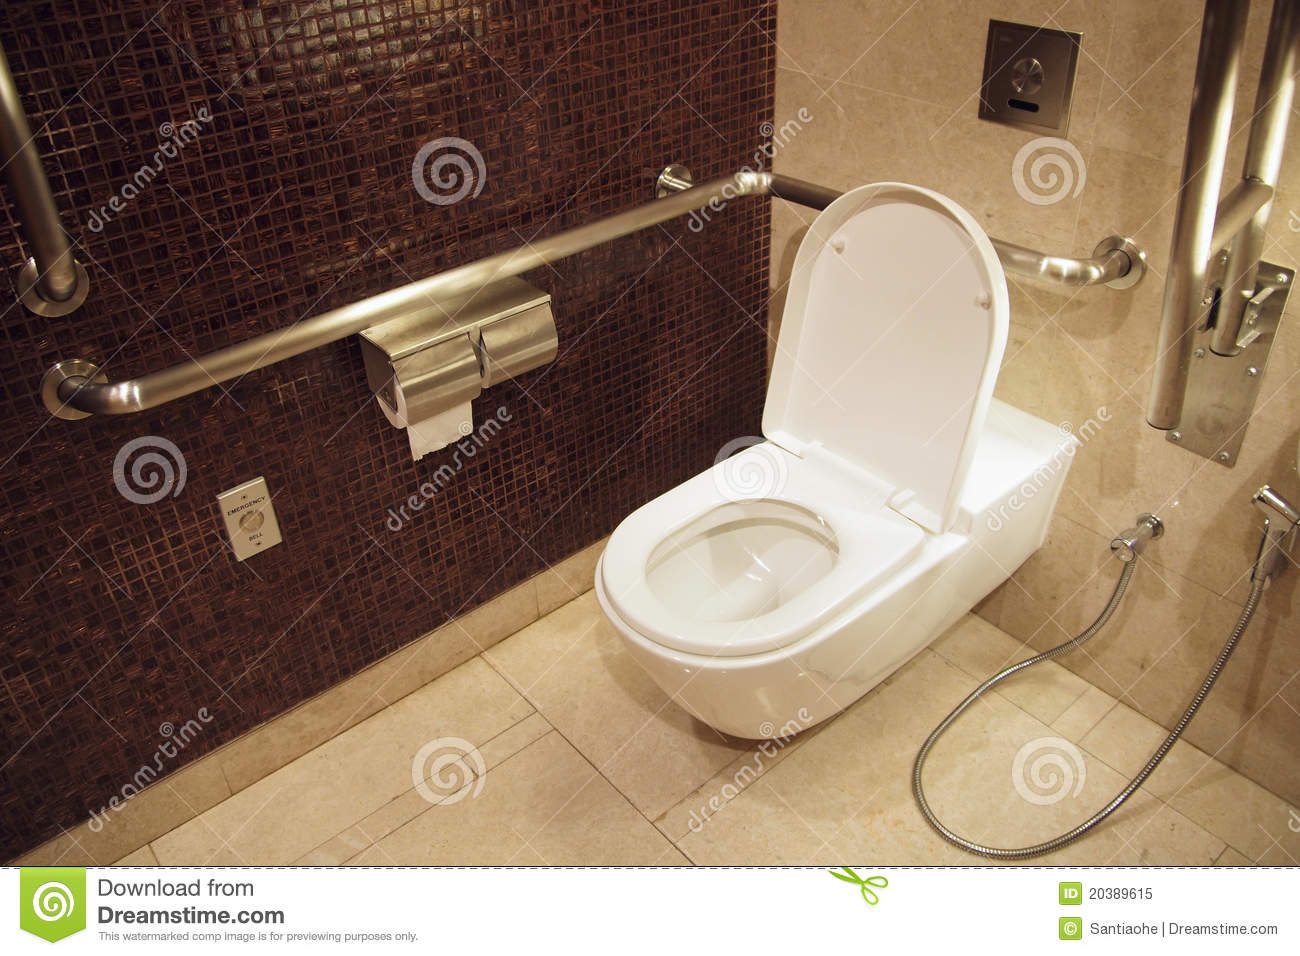 Toilet for disables royalty free stock photo image 20389615 - Toilet for handicapped person ...